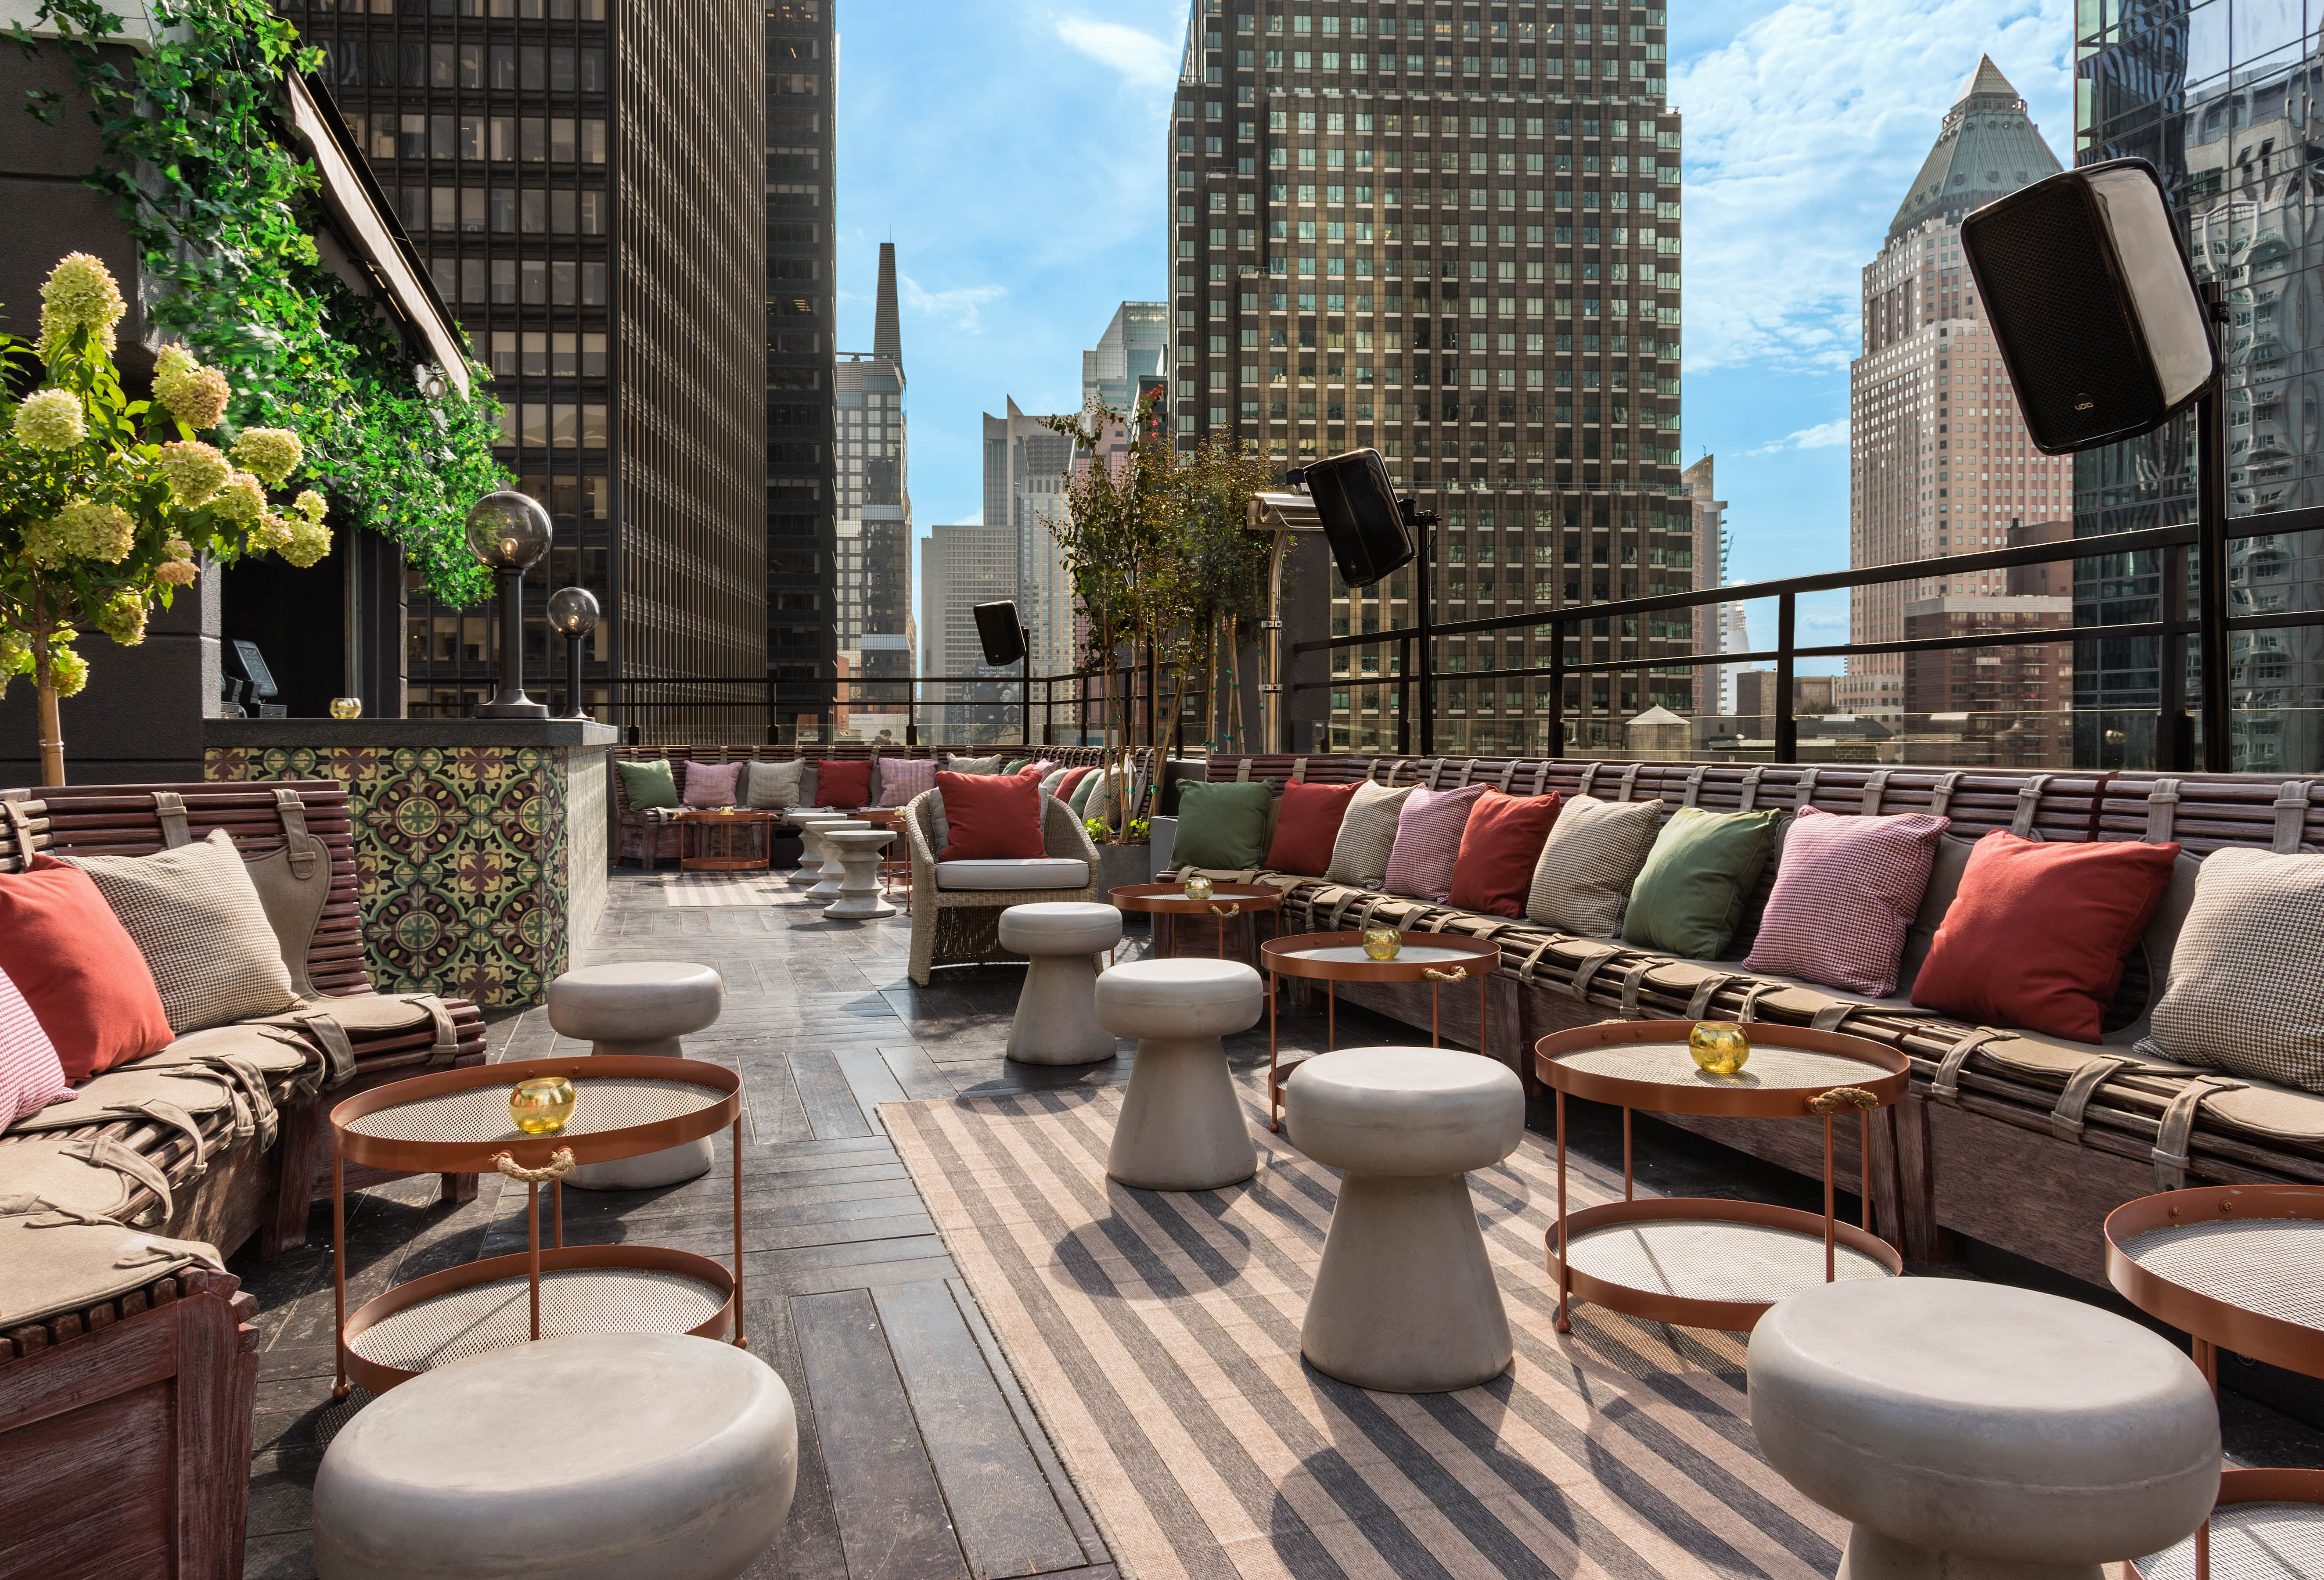 PHD_Terrace_at_Dream_Midtown_5_Courtesy_of_PHD_Terrace_at_Dream_Midtown.jpg